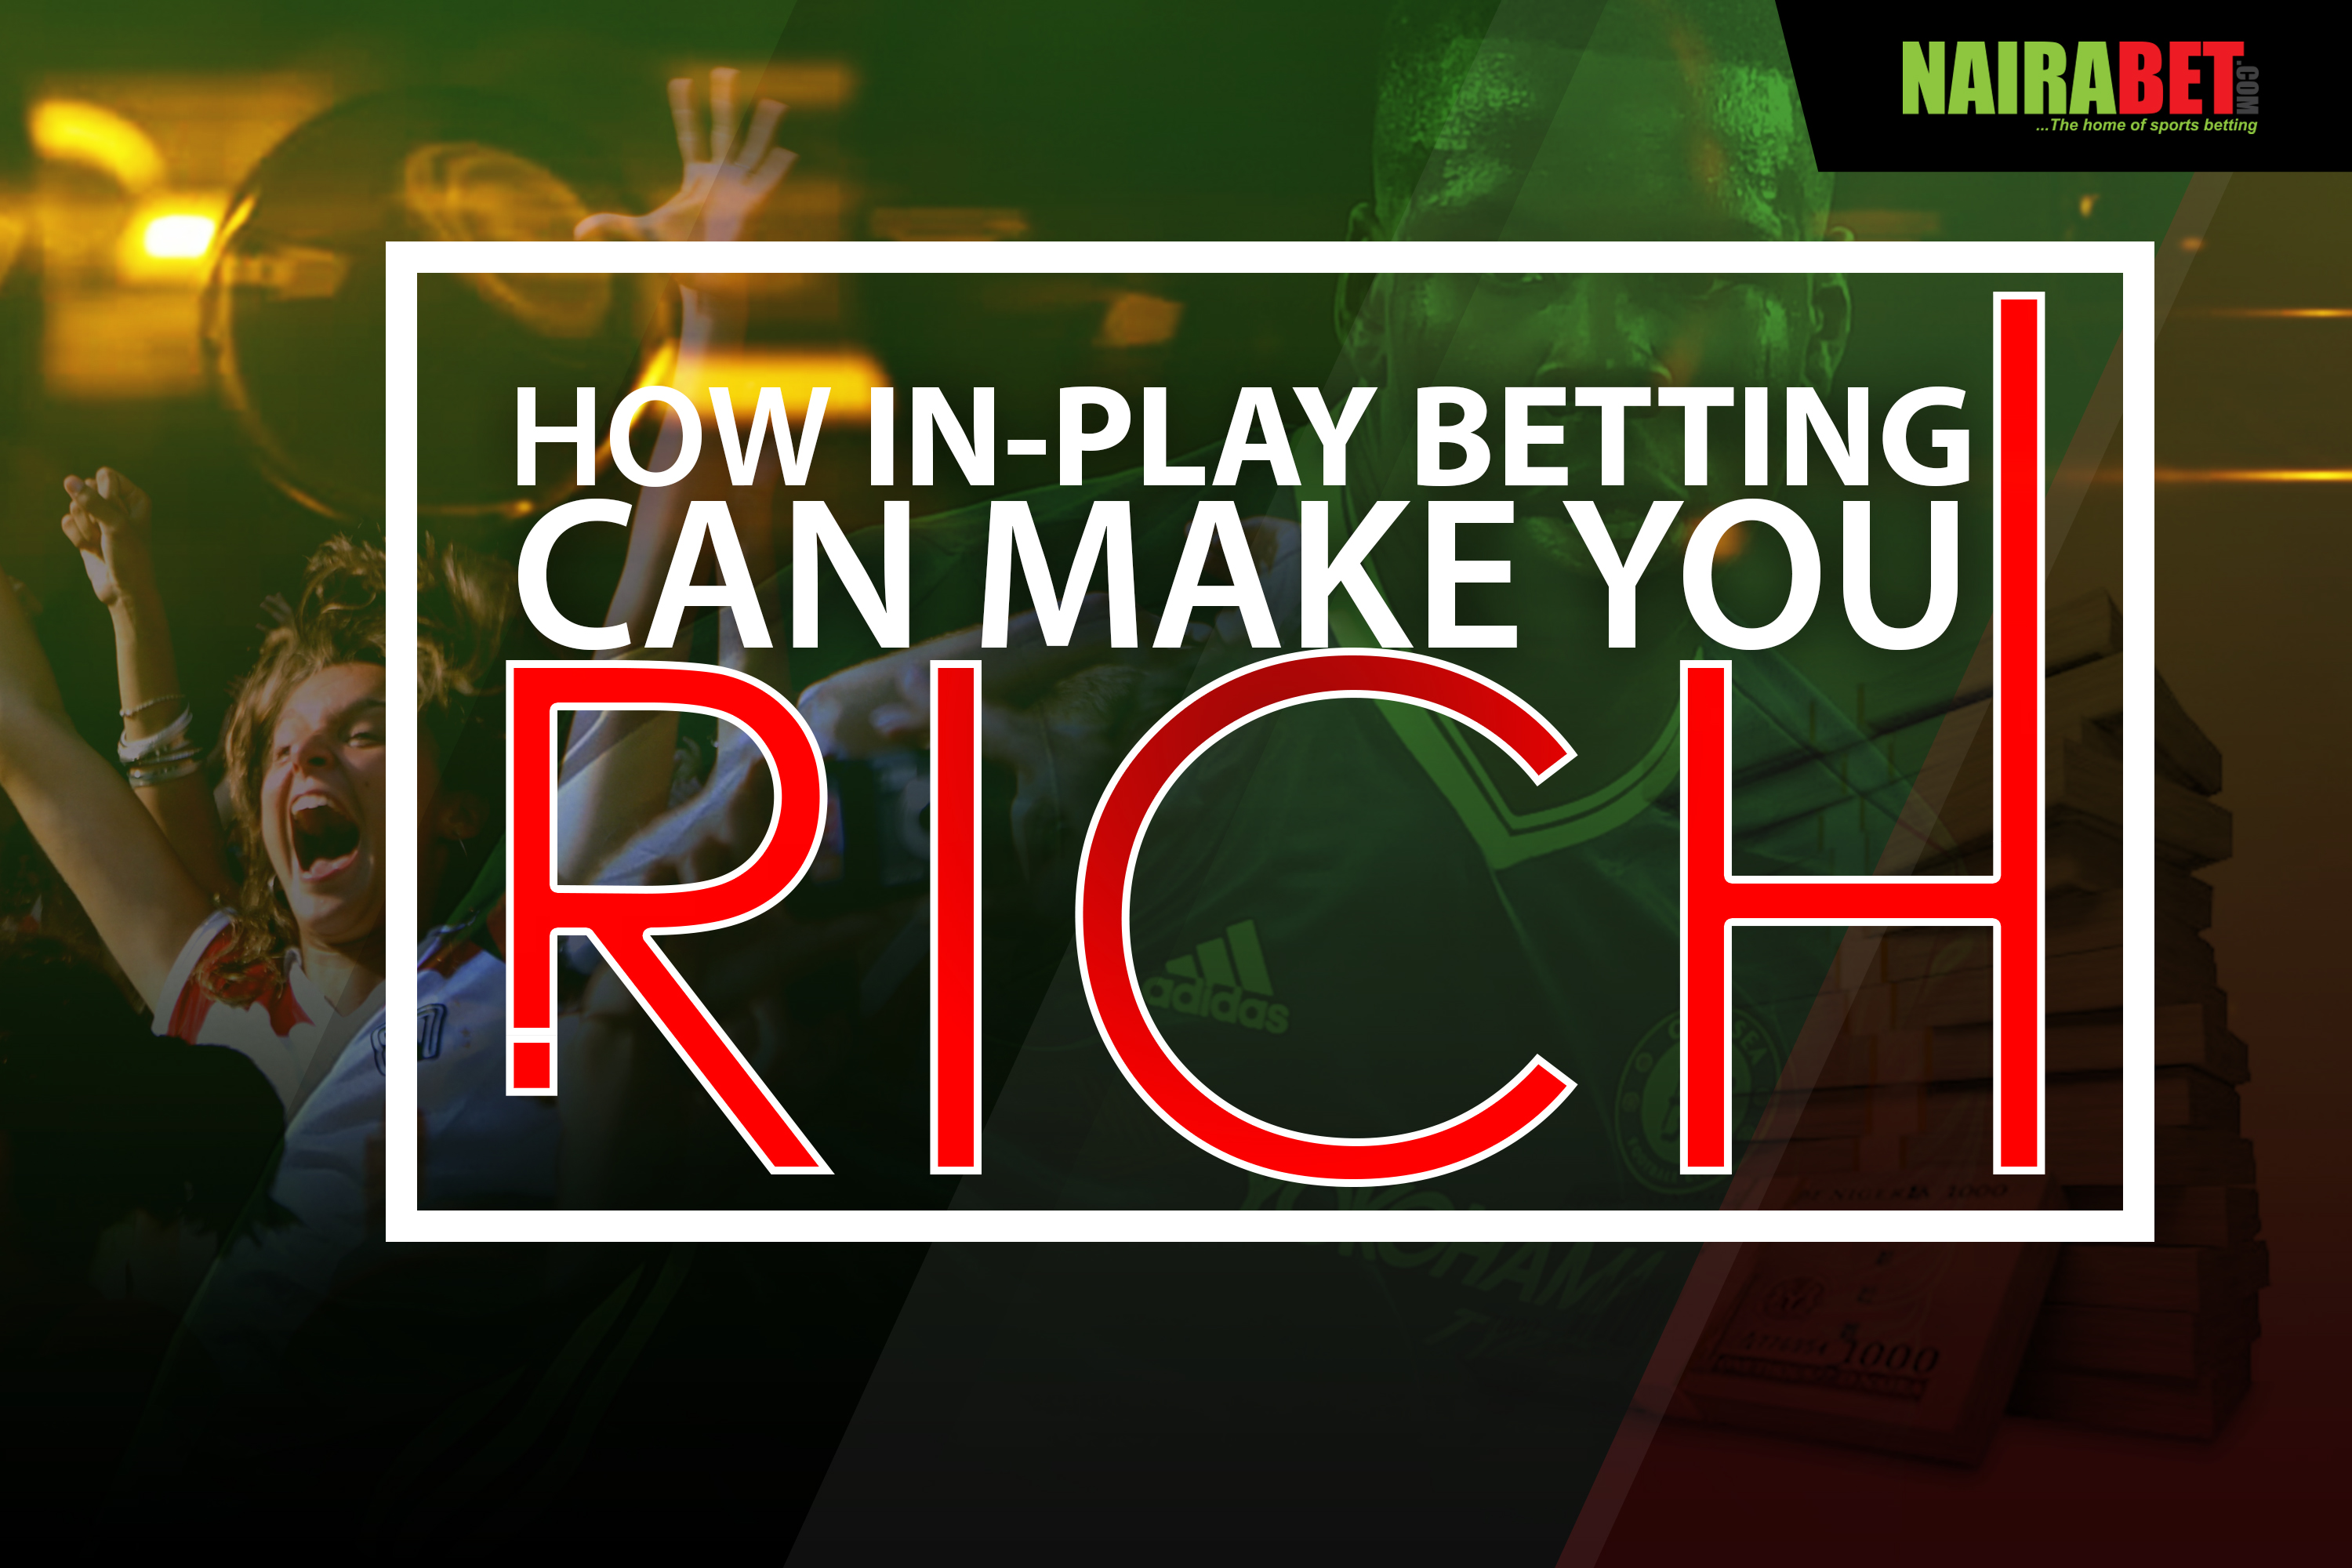 how to play nairabet online